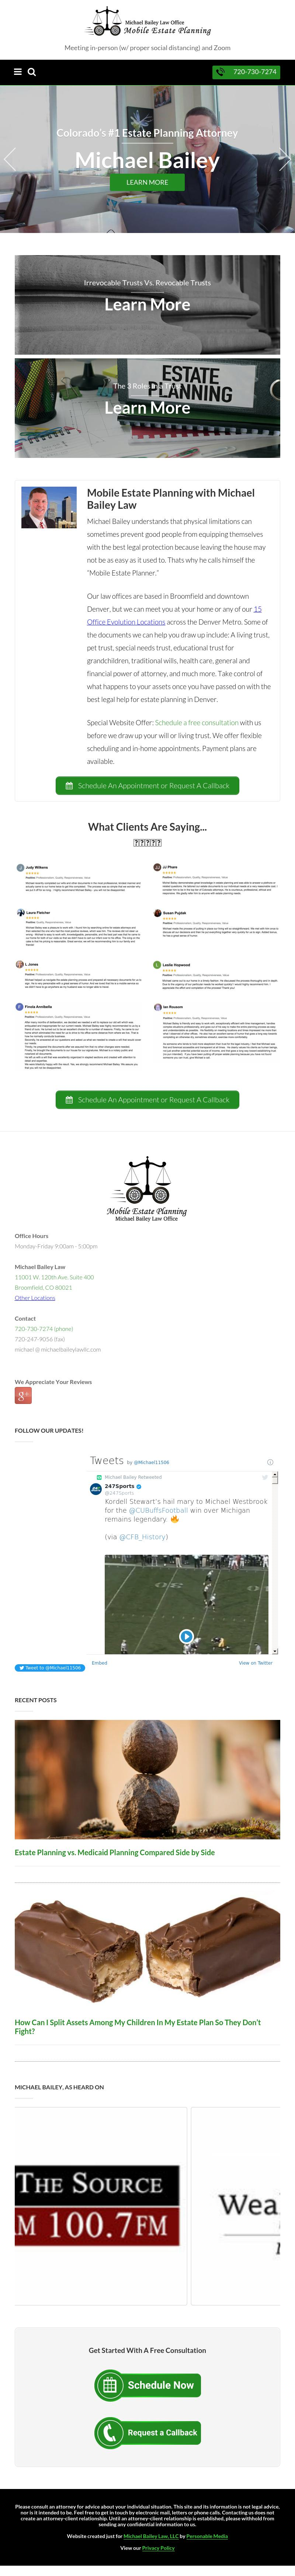 Michael Bailey Law Office LLC - Denver CO Lawyers